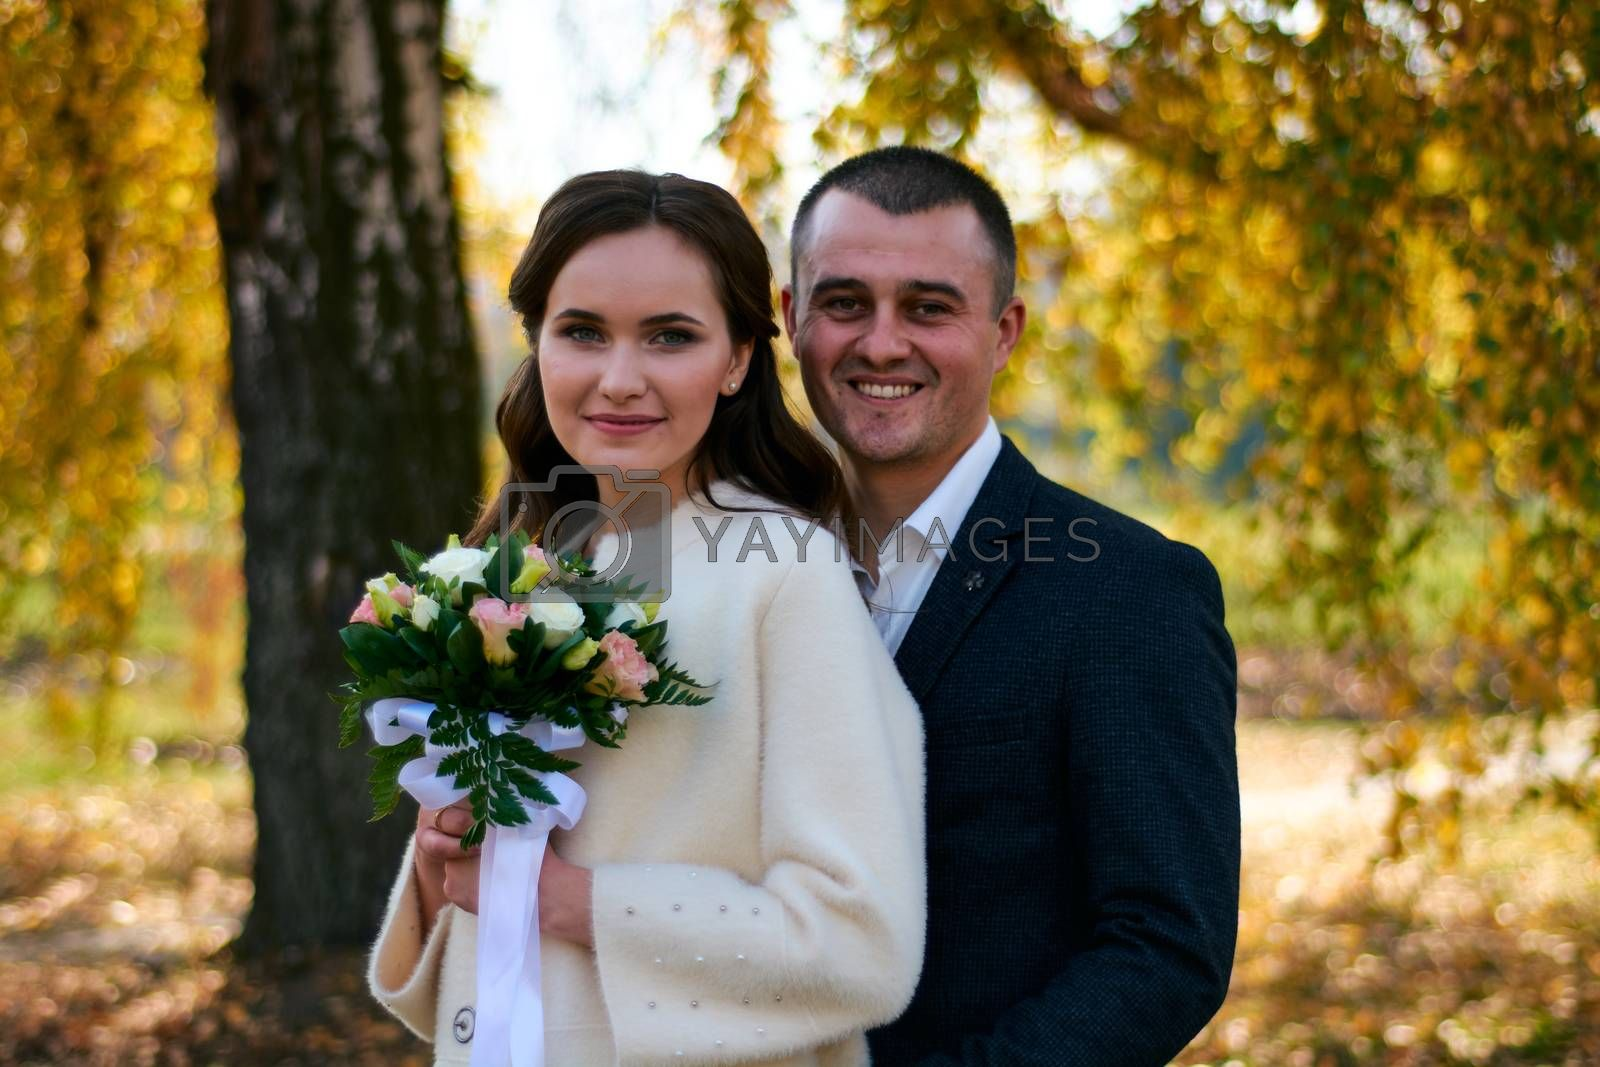 Couple in love close-up portrait. Young male and woman just married. Concept of happy family. Modern family outdoor. Adorable family demonstrate love and care. Autumn vacation.